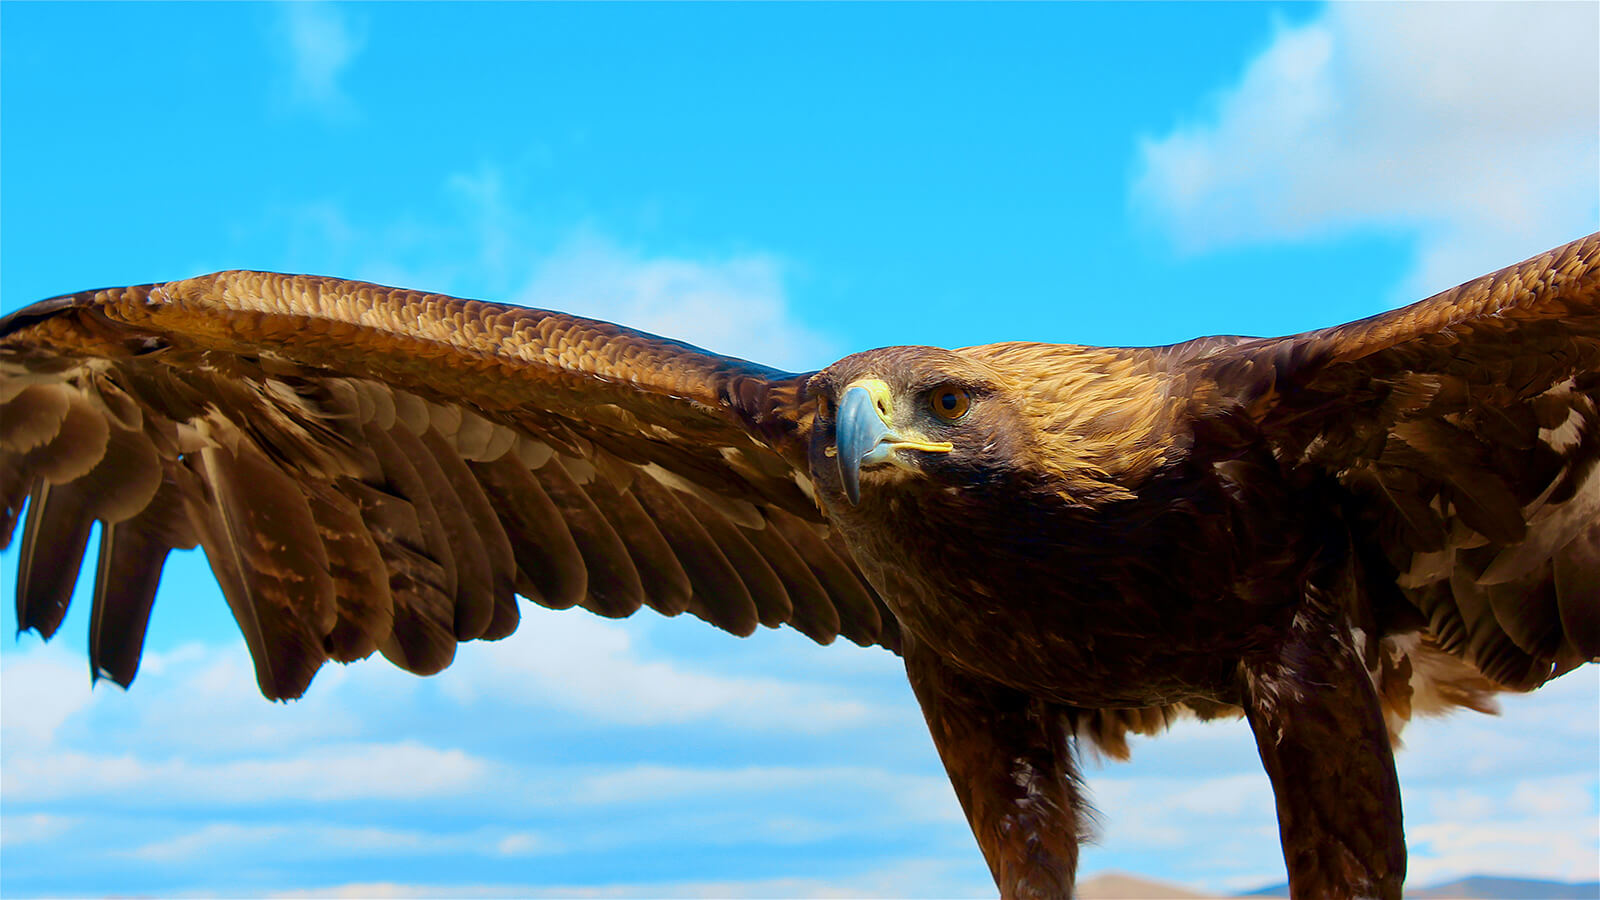 Eagle trained to hunt in Ulaanbaatar, Mongolia